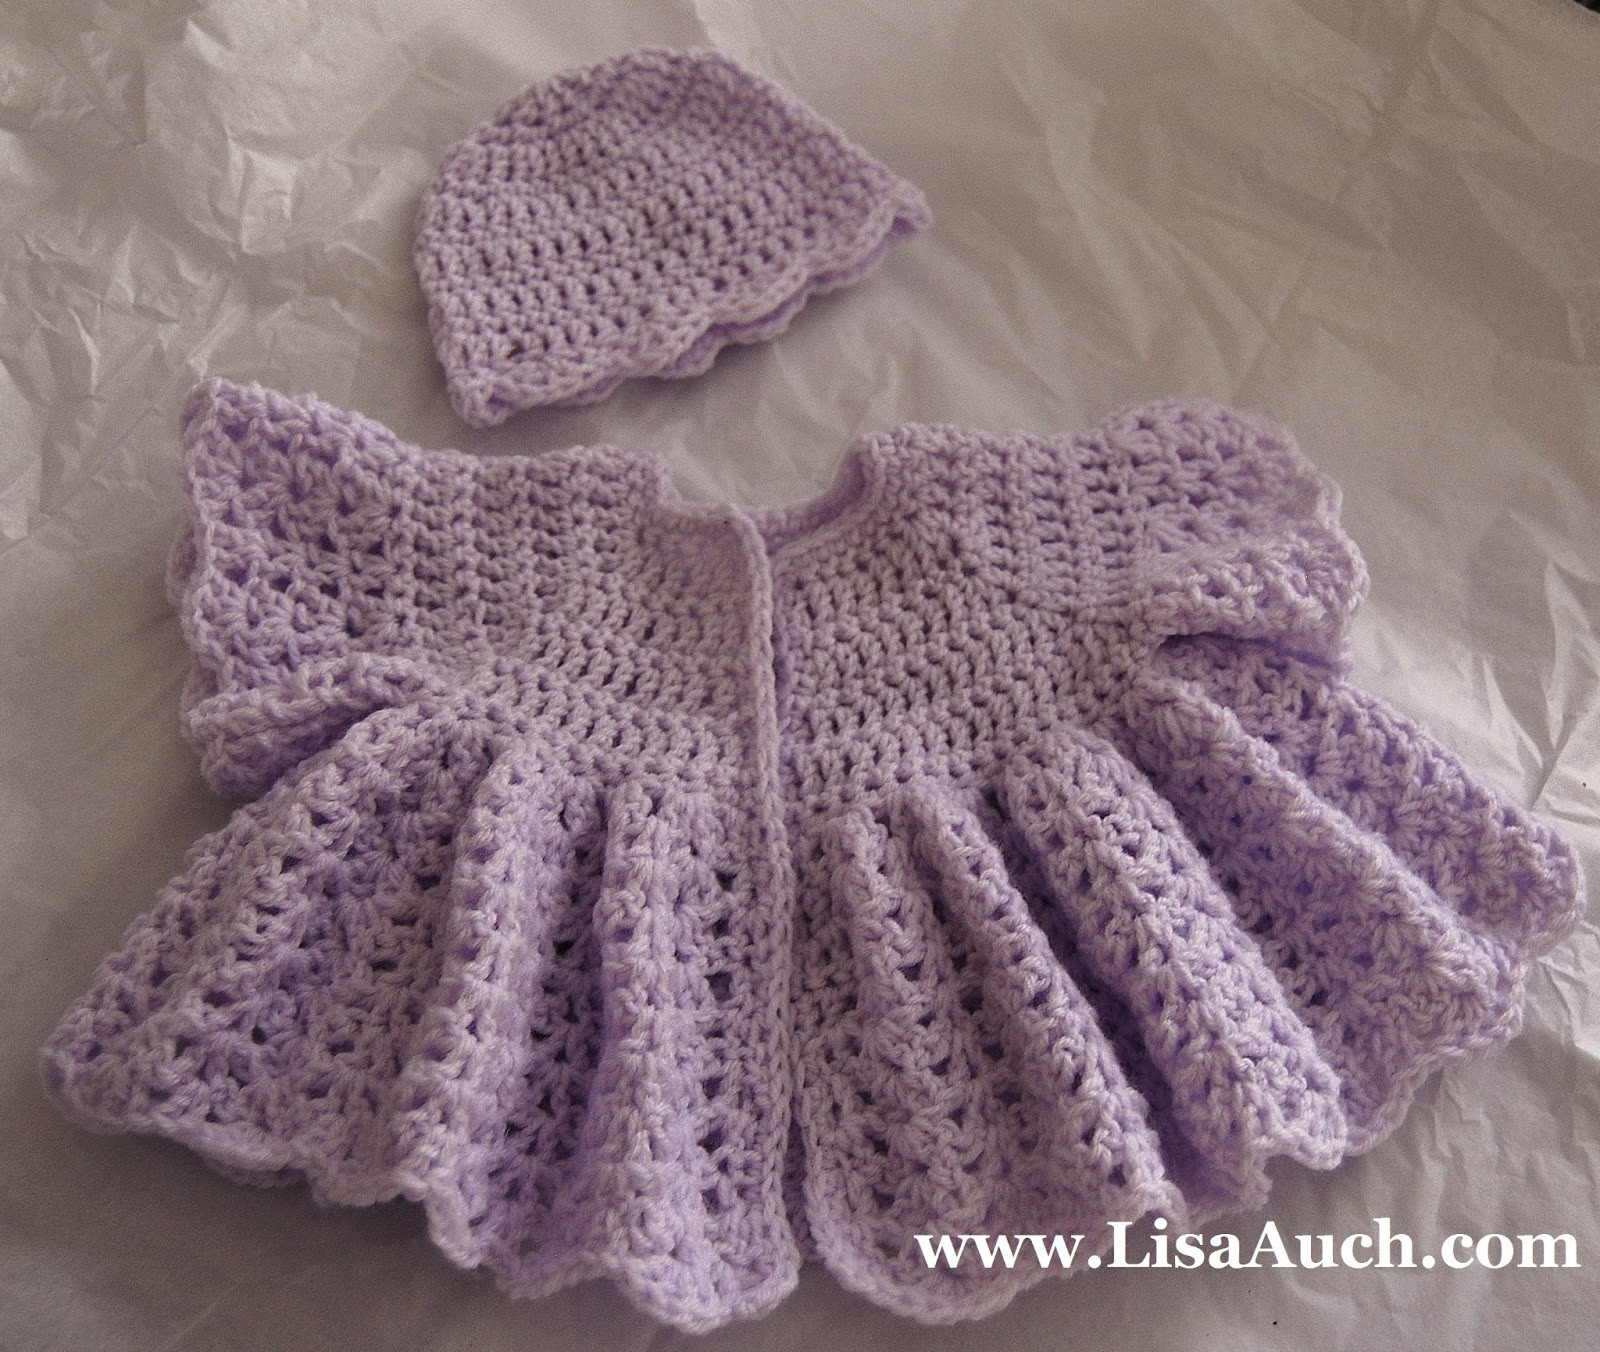 Lovely Free Crochet Patterns and Designs by Lisaauch April 2013 Crochet Baby Sweater Sets Of Charming 43 Photos Crochet Baby Sweater Sets